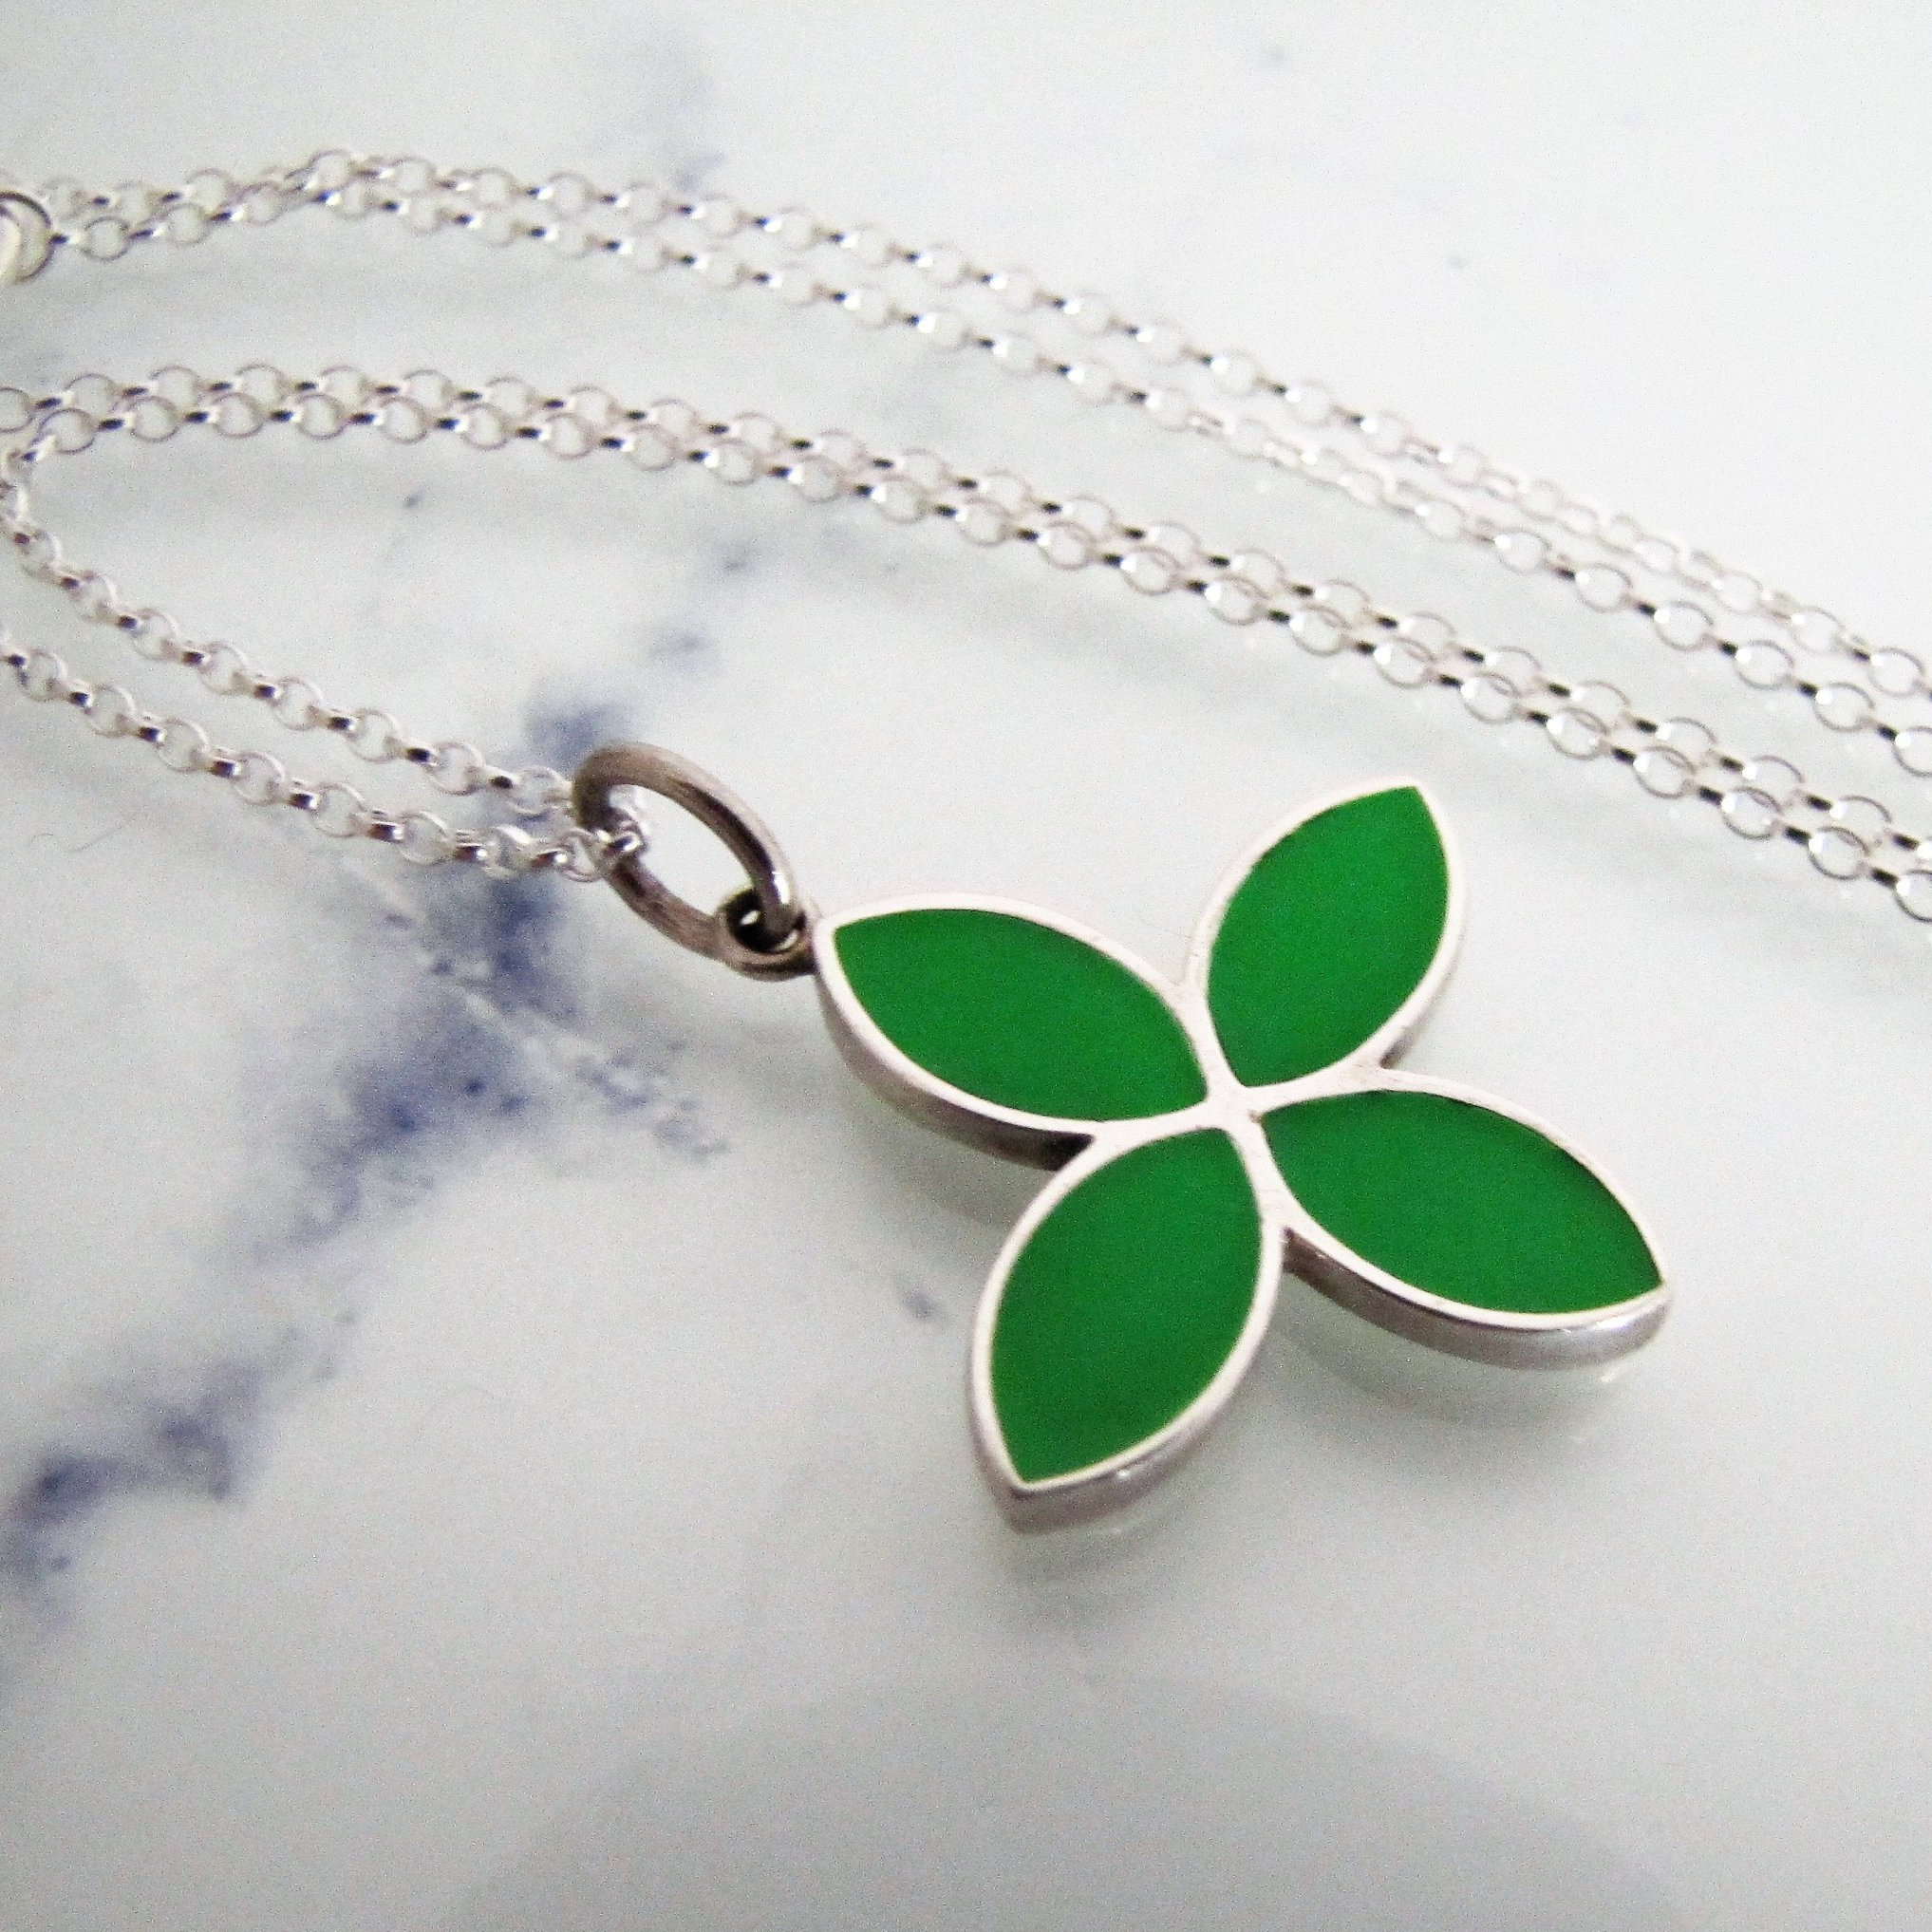 Pandora Silver Enamel Flower Pendant Necklace. Sterling Green Enamel Four Petal Pendant, Italian Trace Chain. Signed Ale (View 18 of 25)